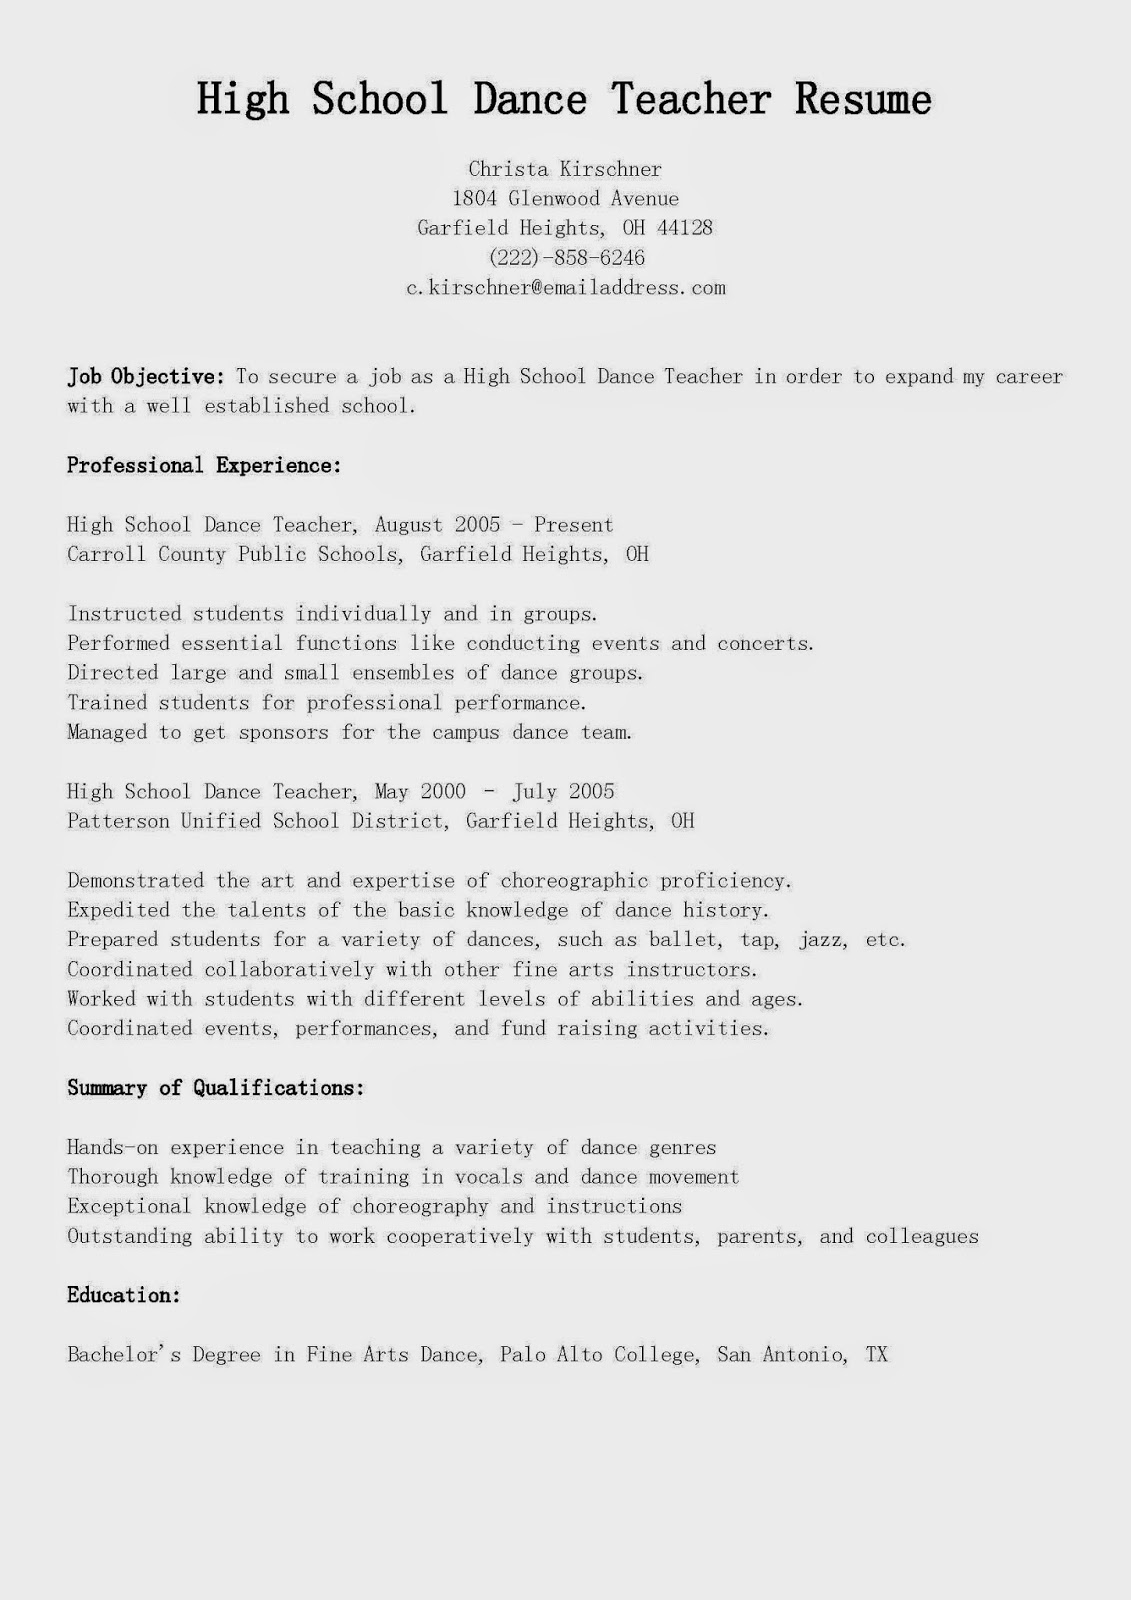 resume samples  high school dance teacher resume sample